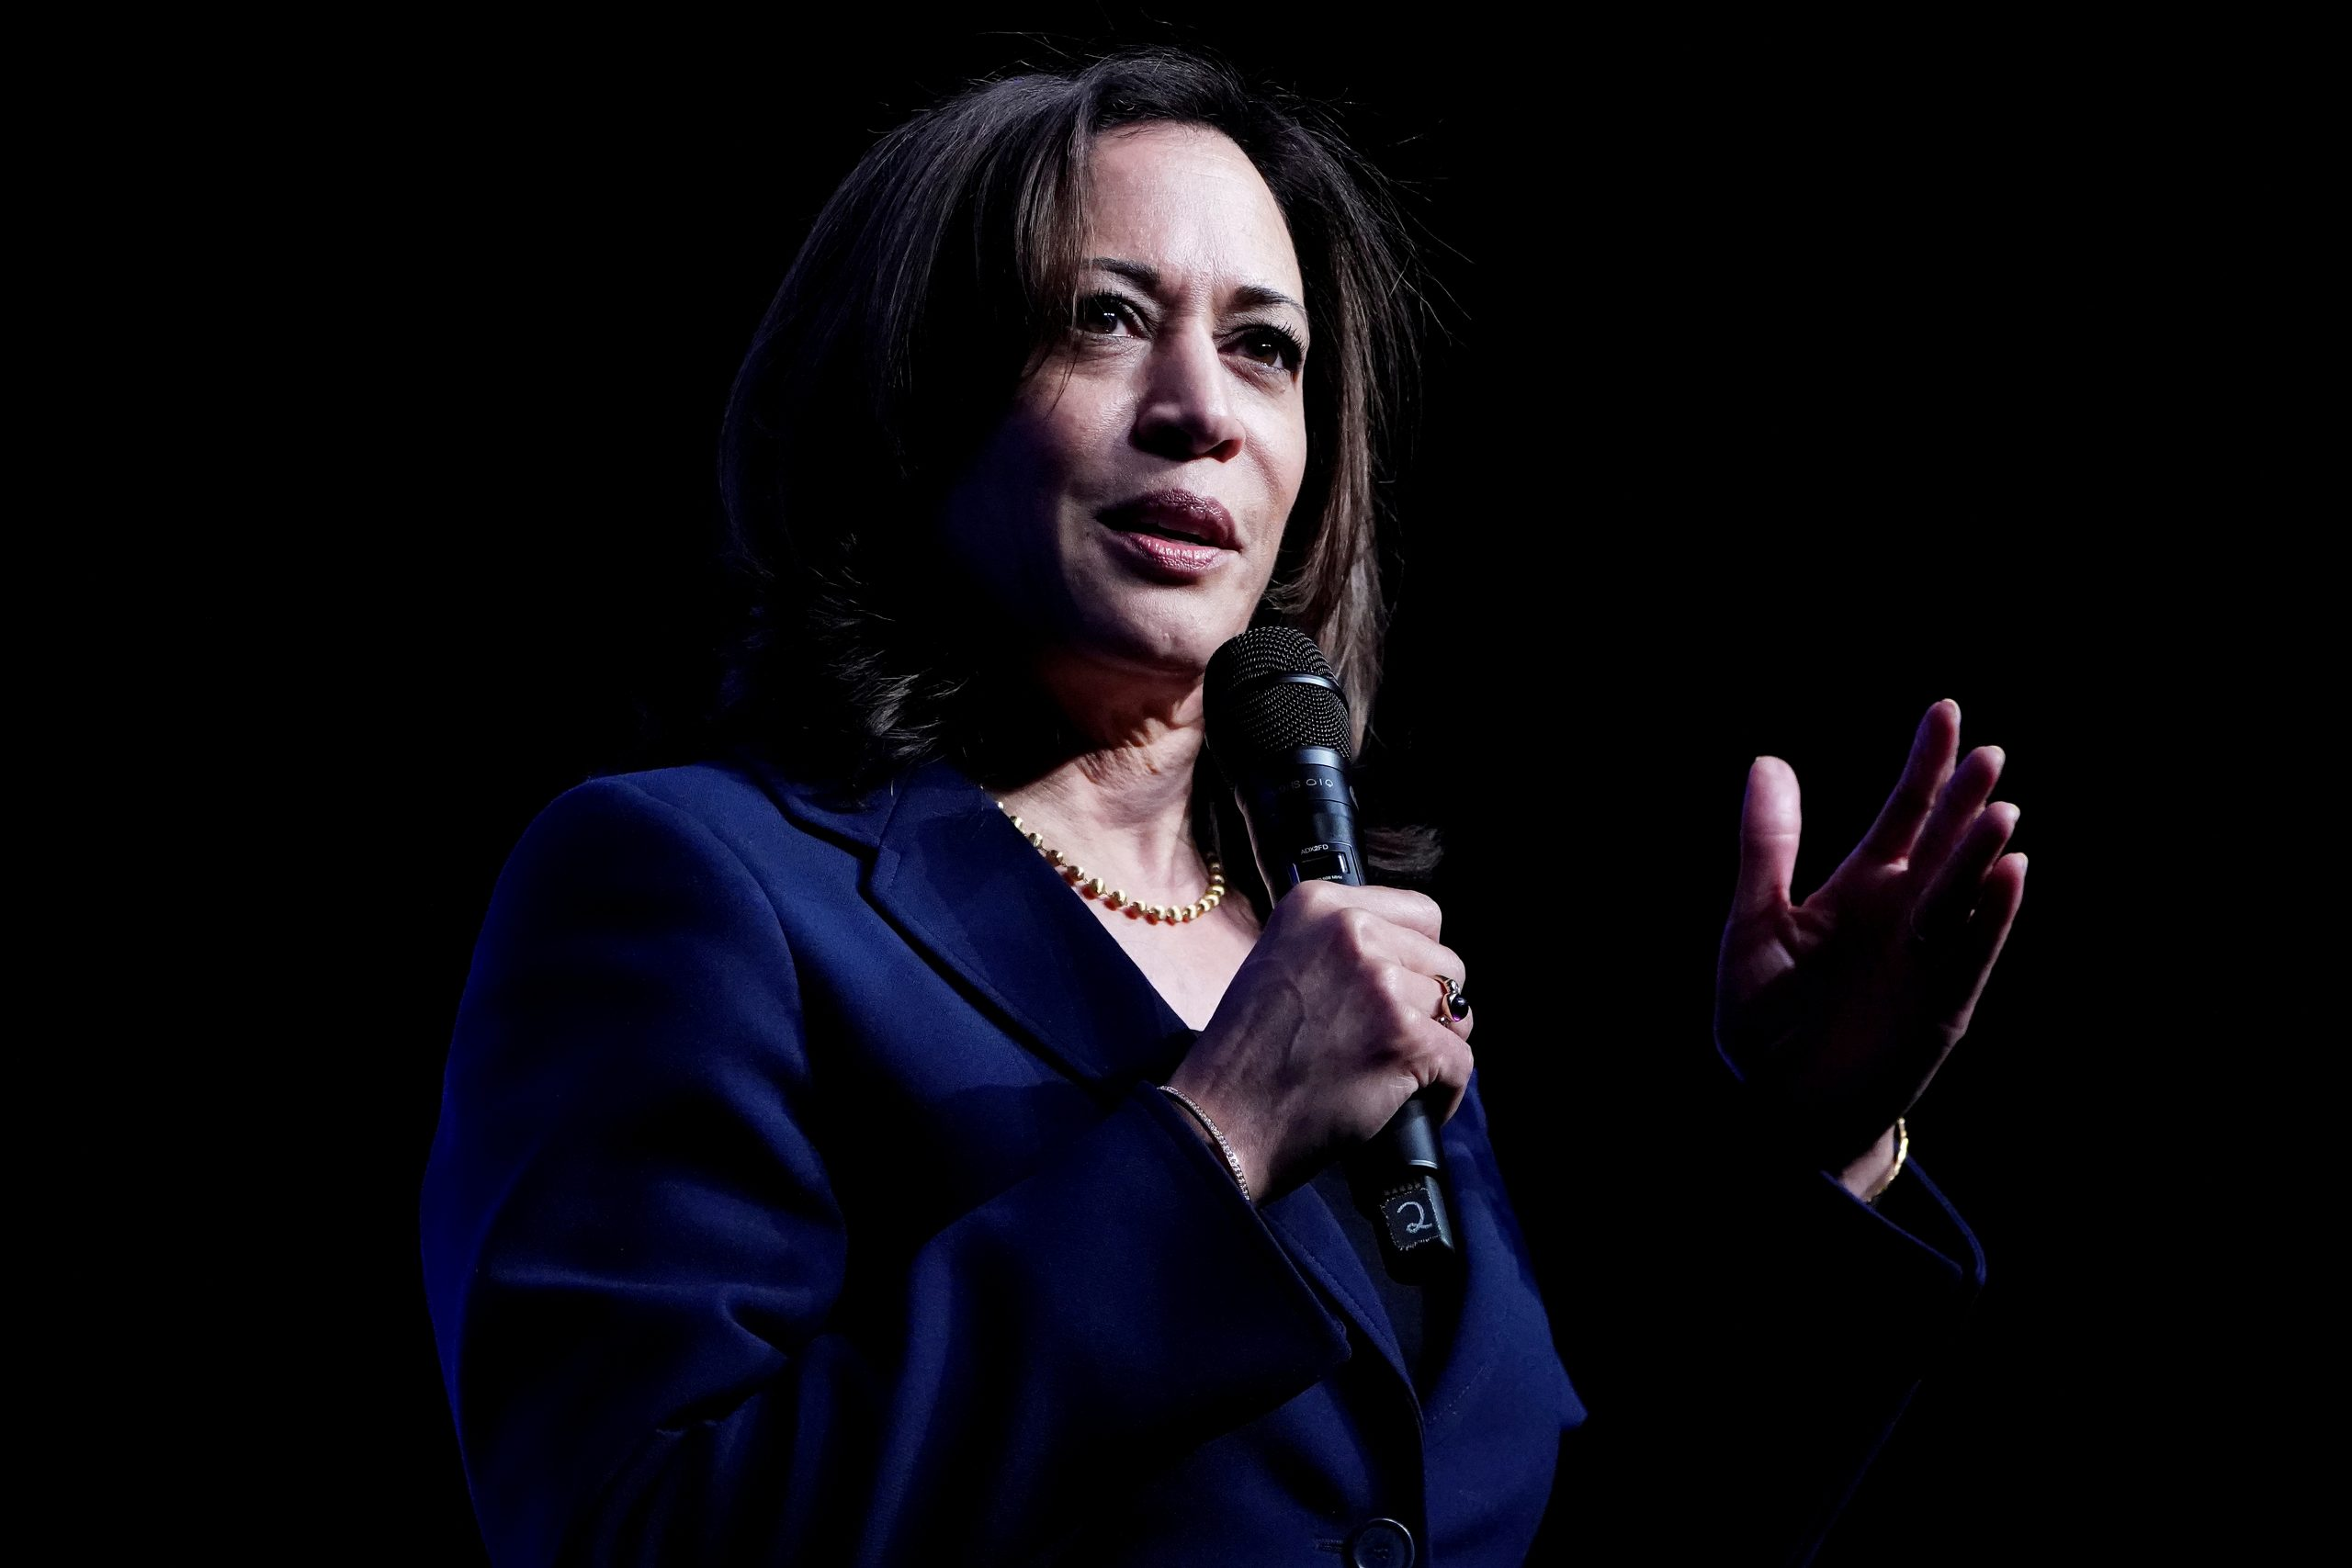 """She is a person who never forgets her roots and believes in family values,"" said American senator Kamala Harris's aunt Sarala Gopalan. (REUTERS/Carlo Allegri/File Photo)"